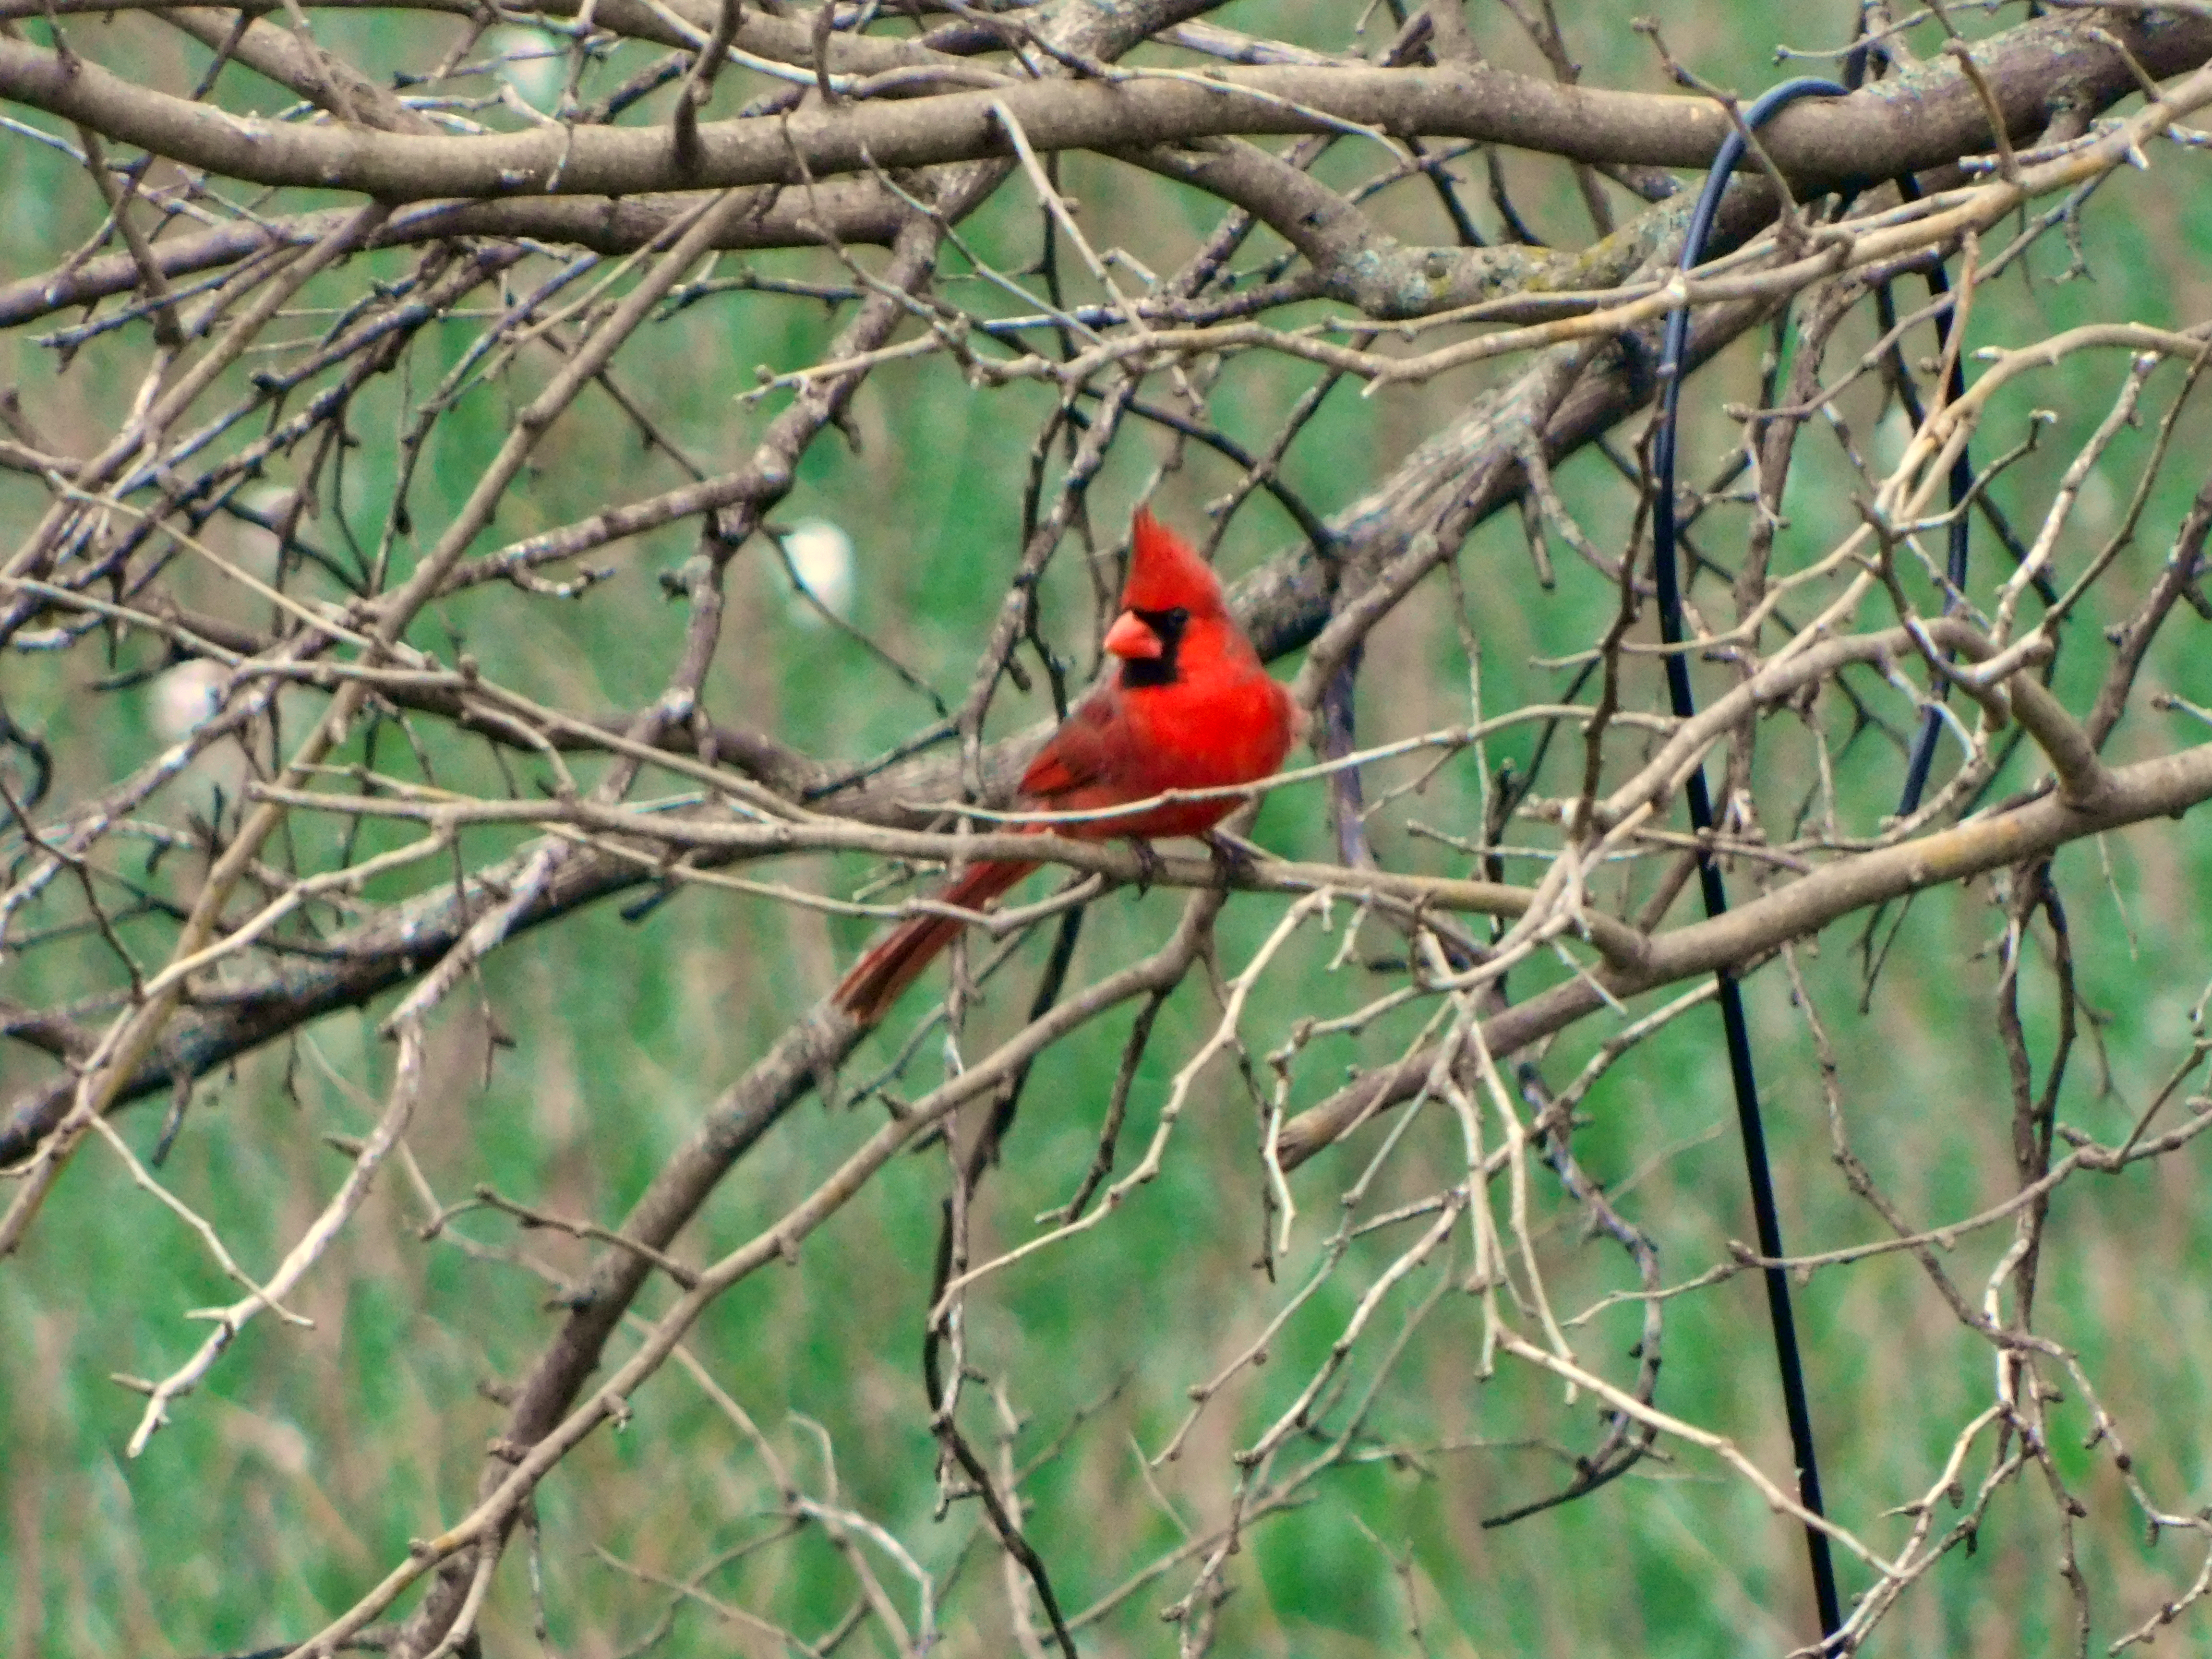 Male Northern Cardinal perched in a tree